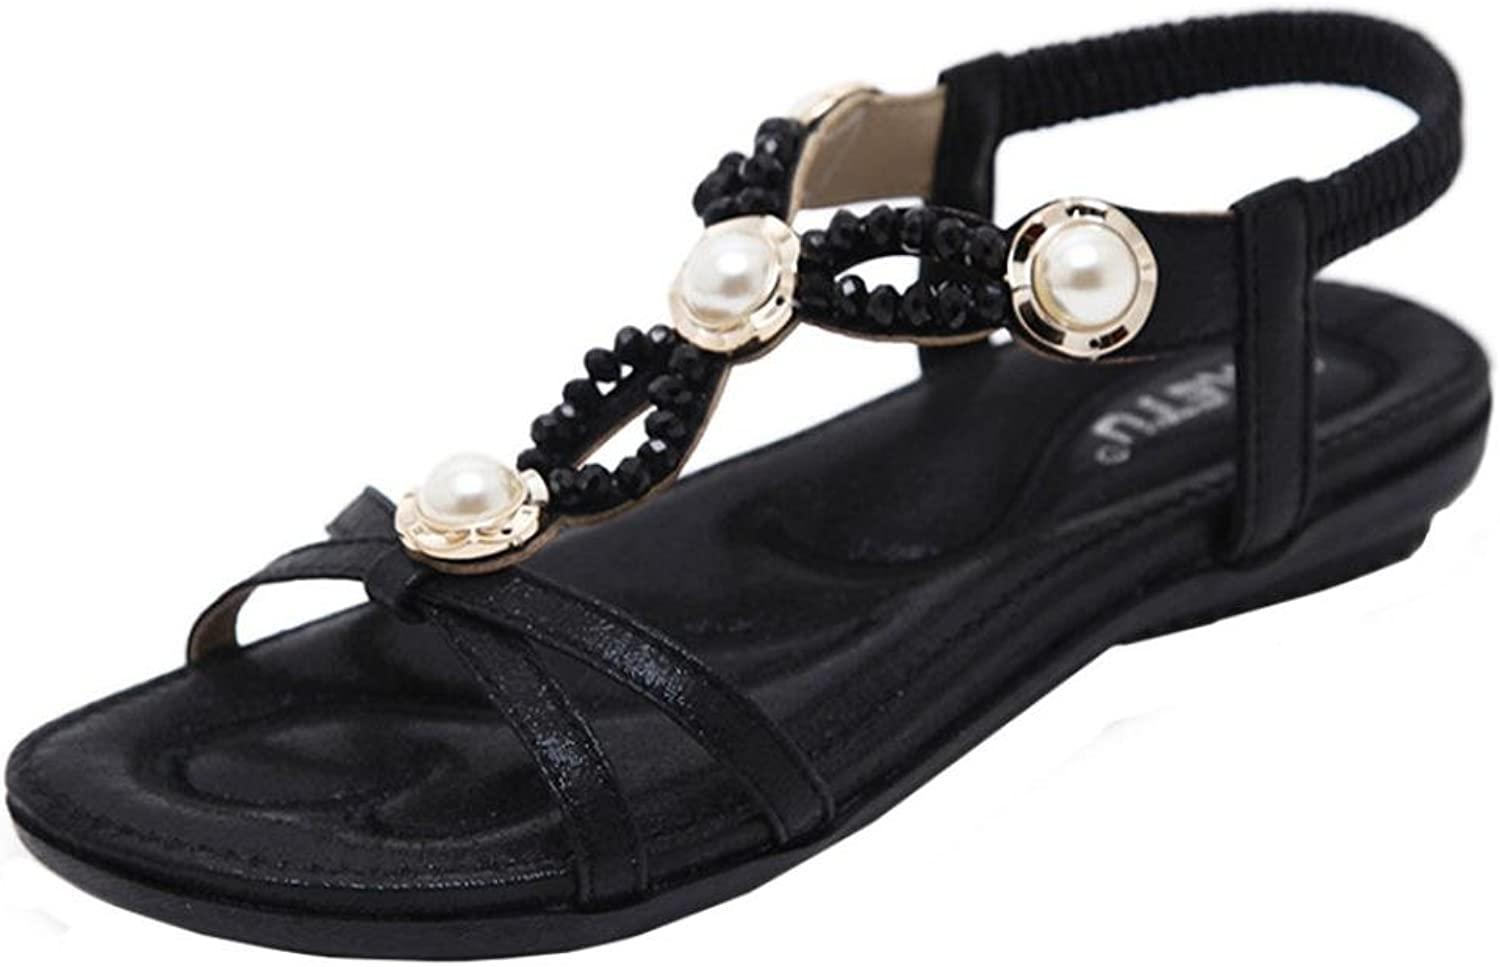 Fheaven Women Flat shoes Bohemia Rhinestone Beads Straps Sandals Outdoor shoes Sliver